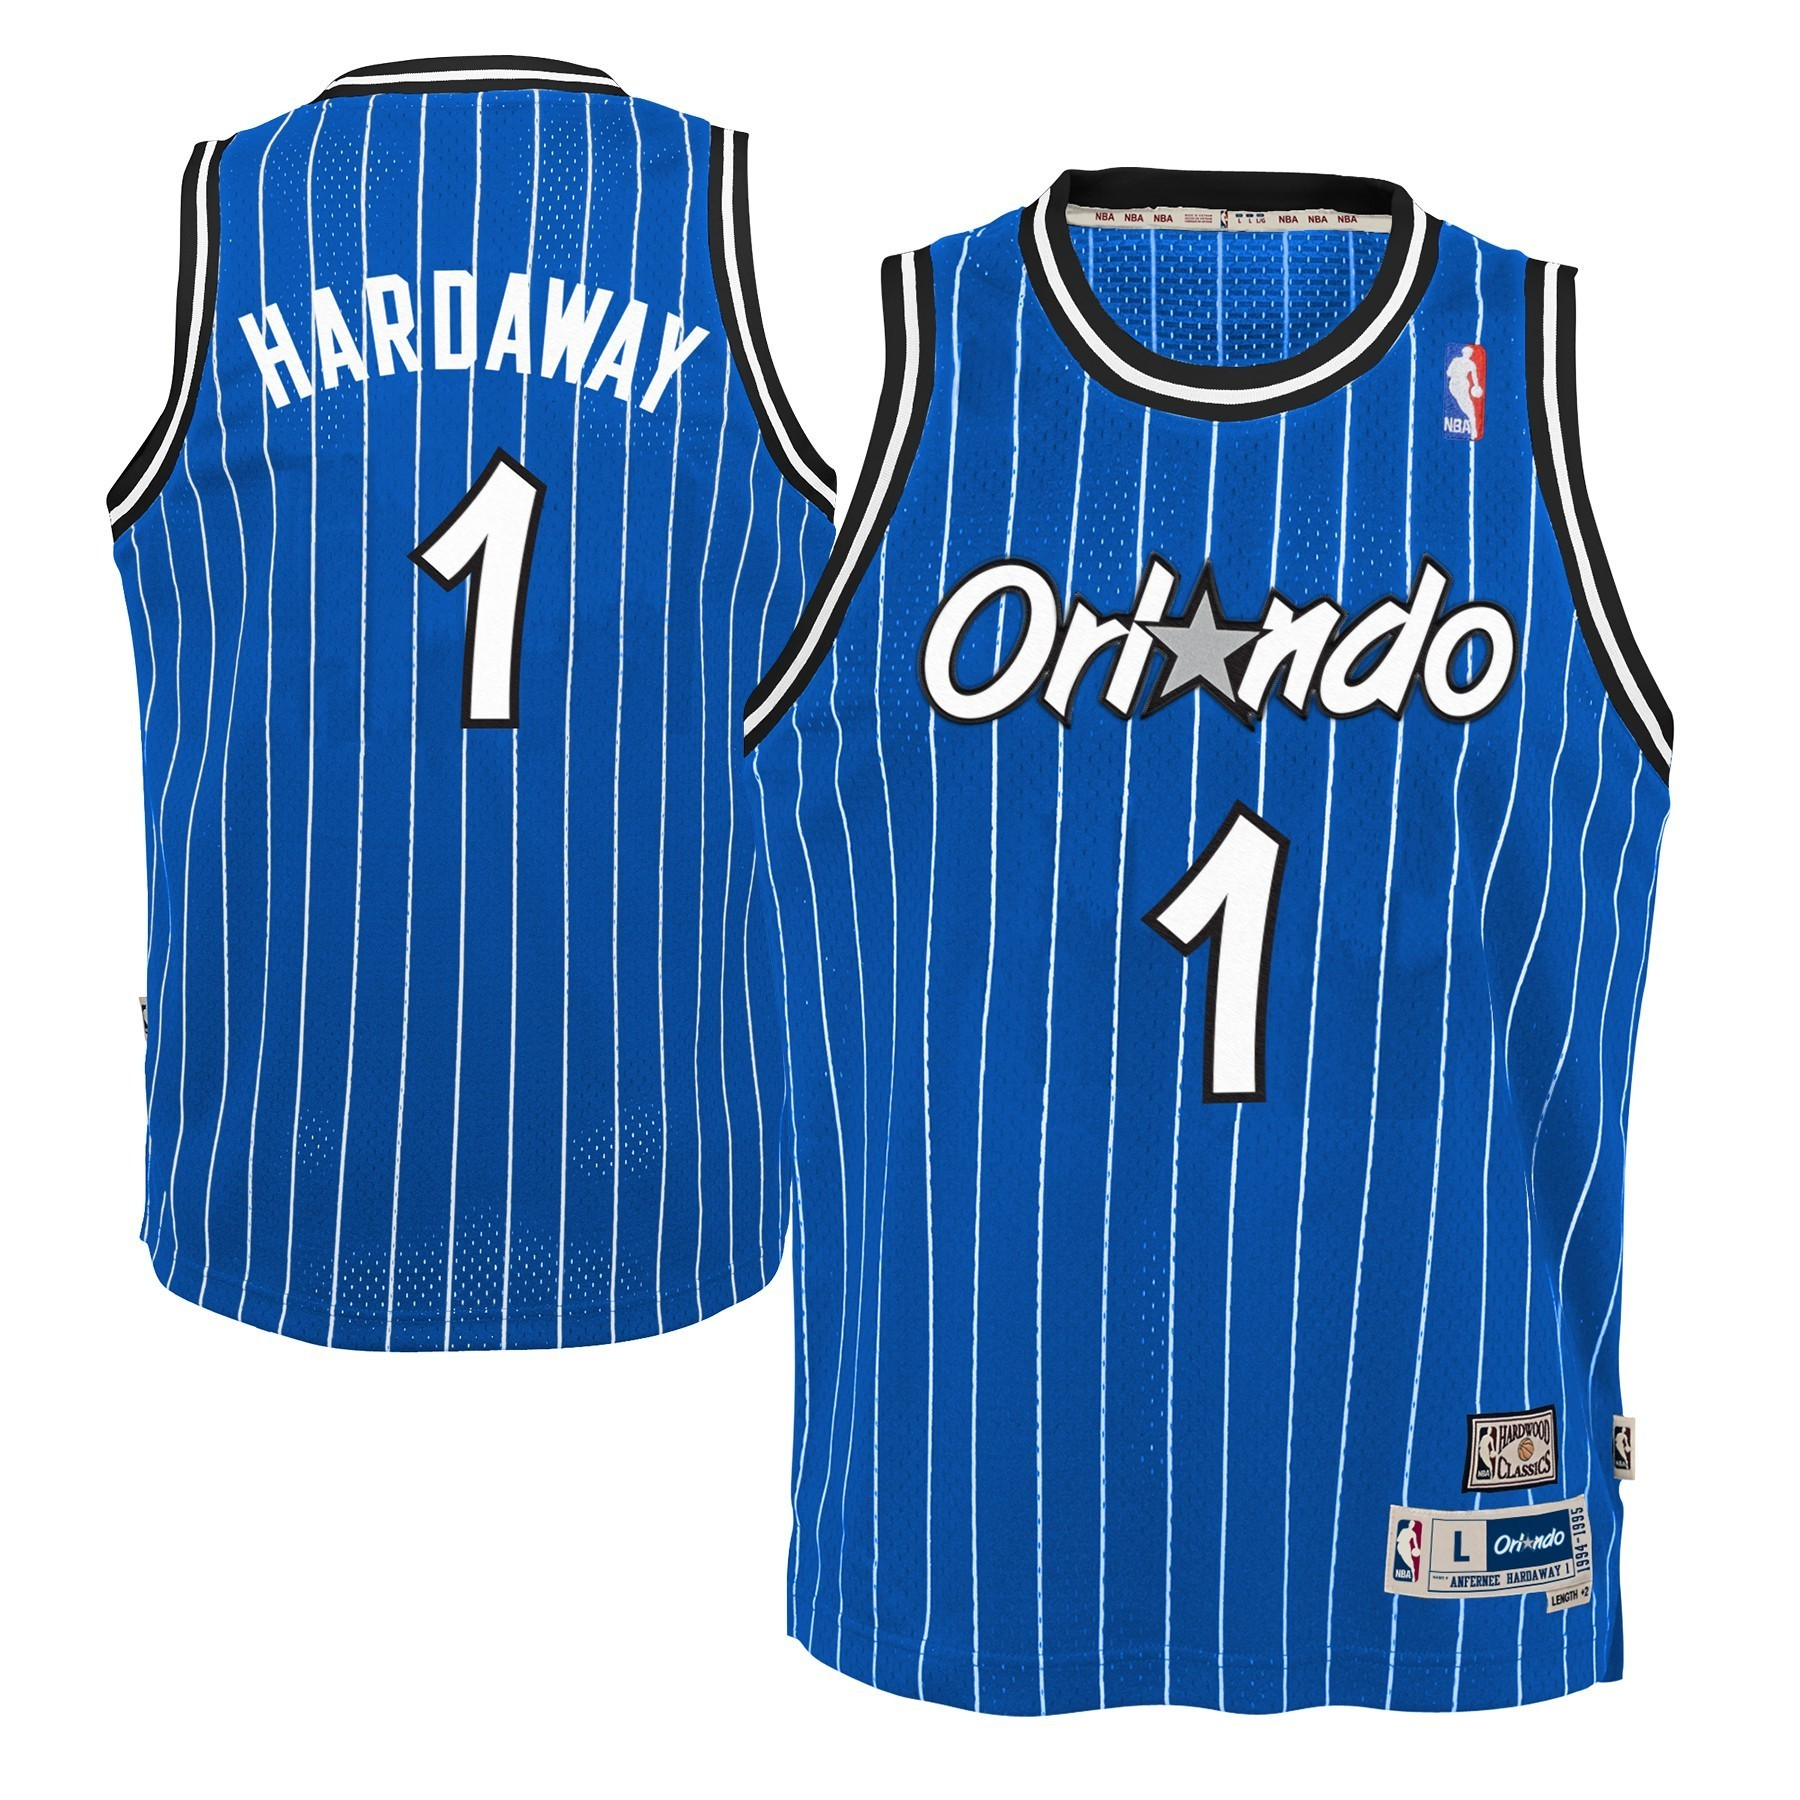 61e11ebf0 Details about Anfernee Hardaway Orlando Magic NBA Youth Throwback Swingman  Jersey - Blue